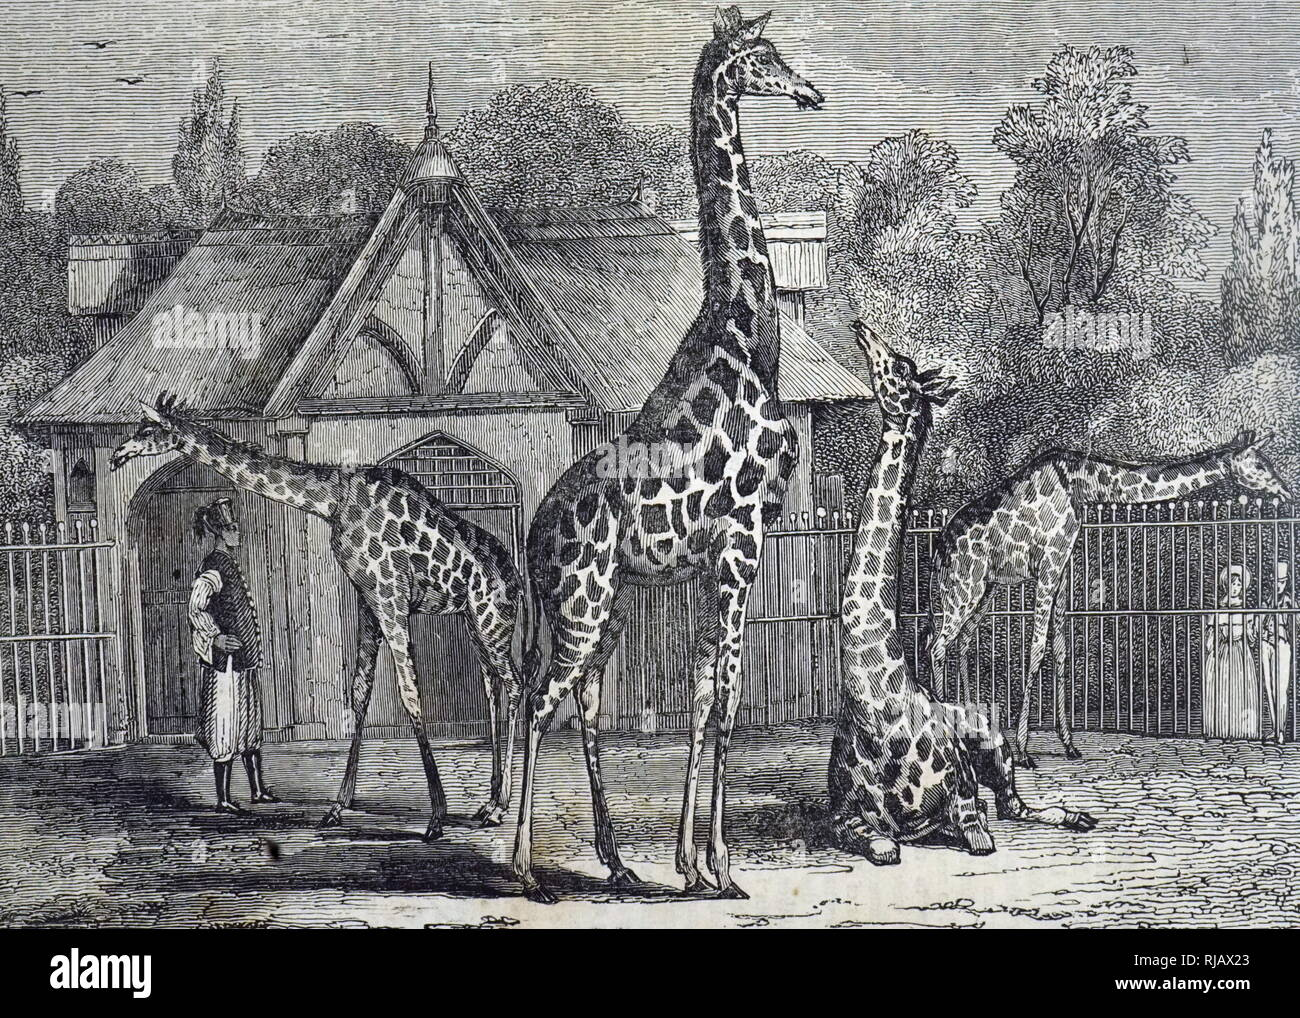 An engraving depicting the four giraffes of the Royal Zoological Society's Gardens, Regent's Park, London. Dated 19th century Stock Photo